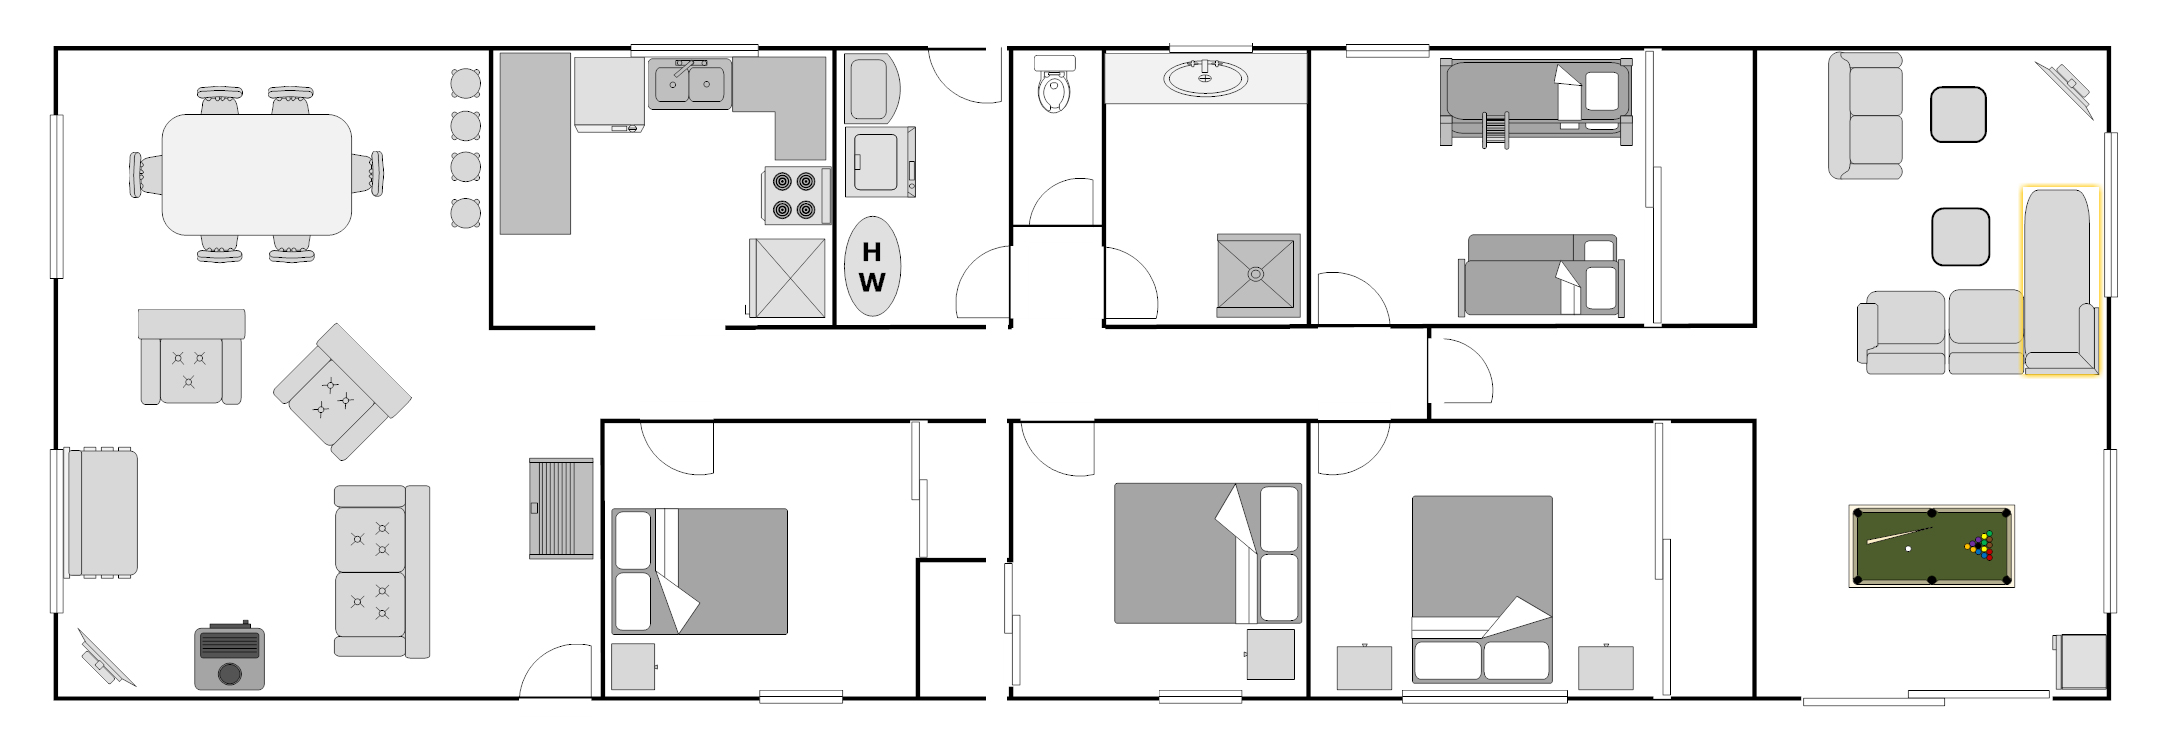 Outhouse Floor Plans http://www.beachholidayhouses.com.au/clubhouse/abouthouse.html